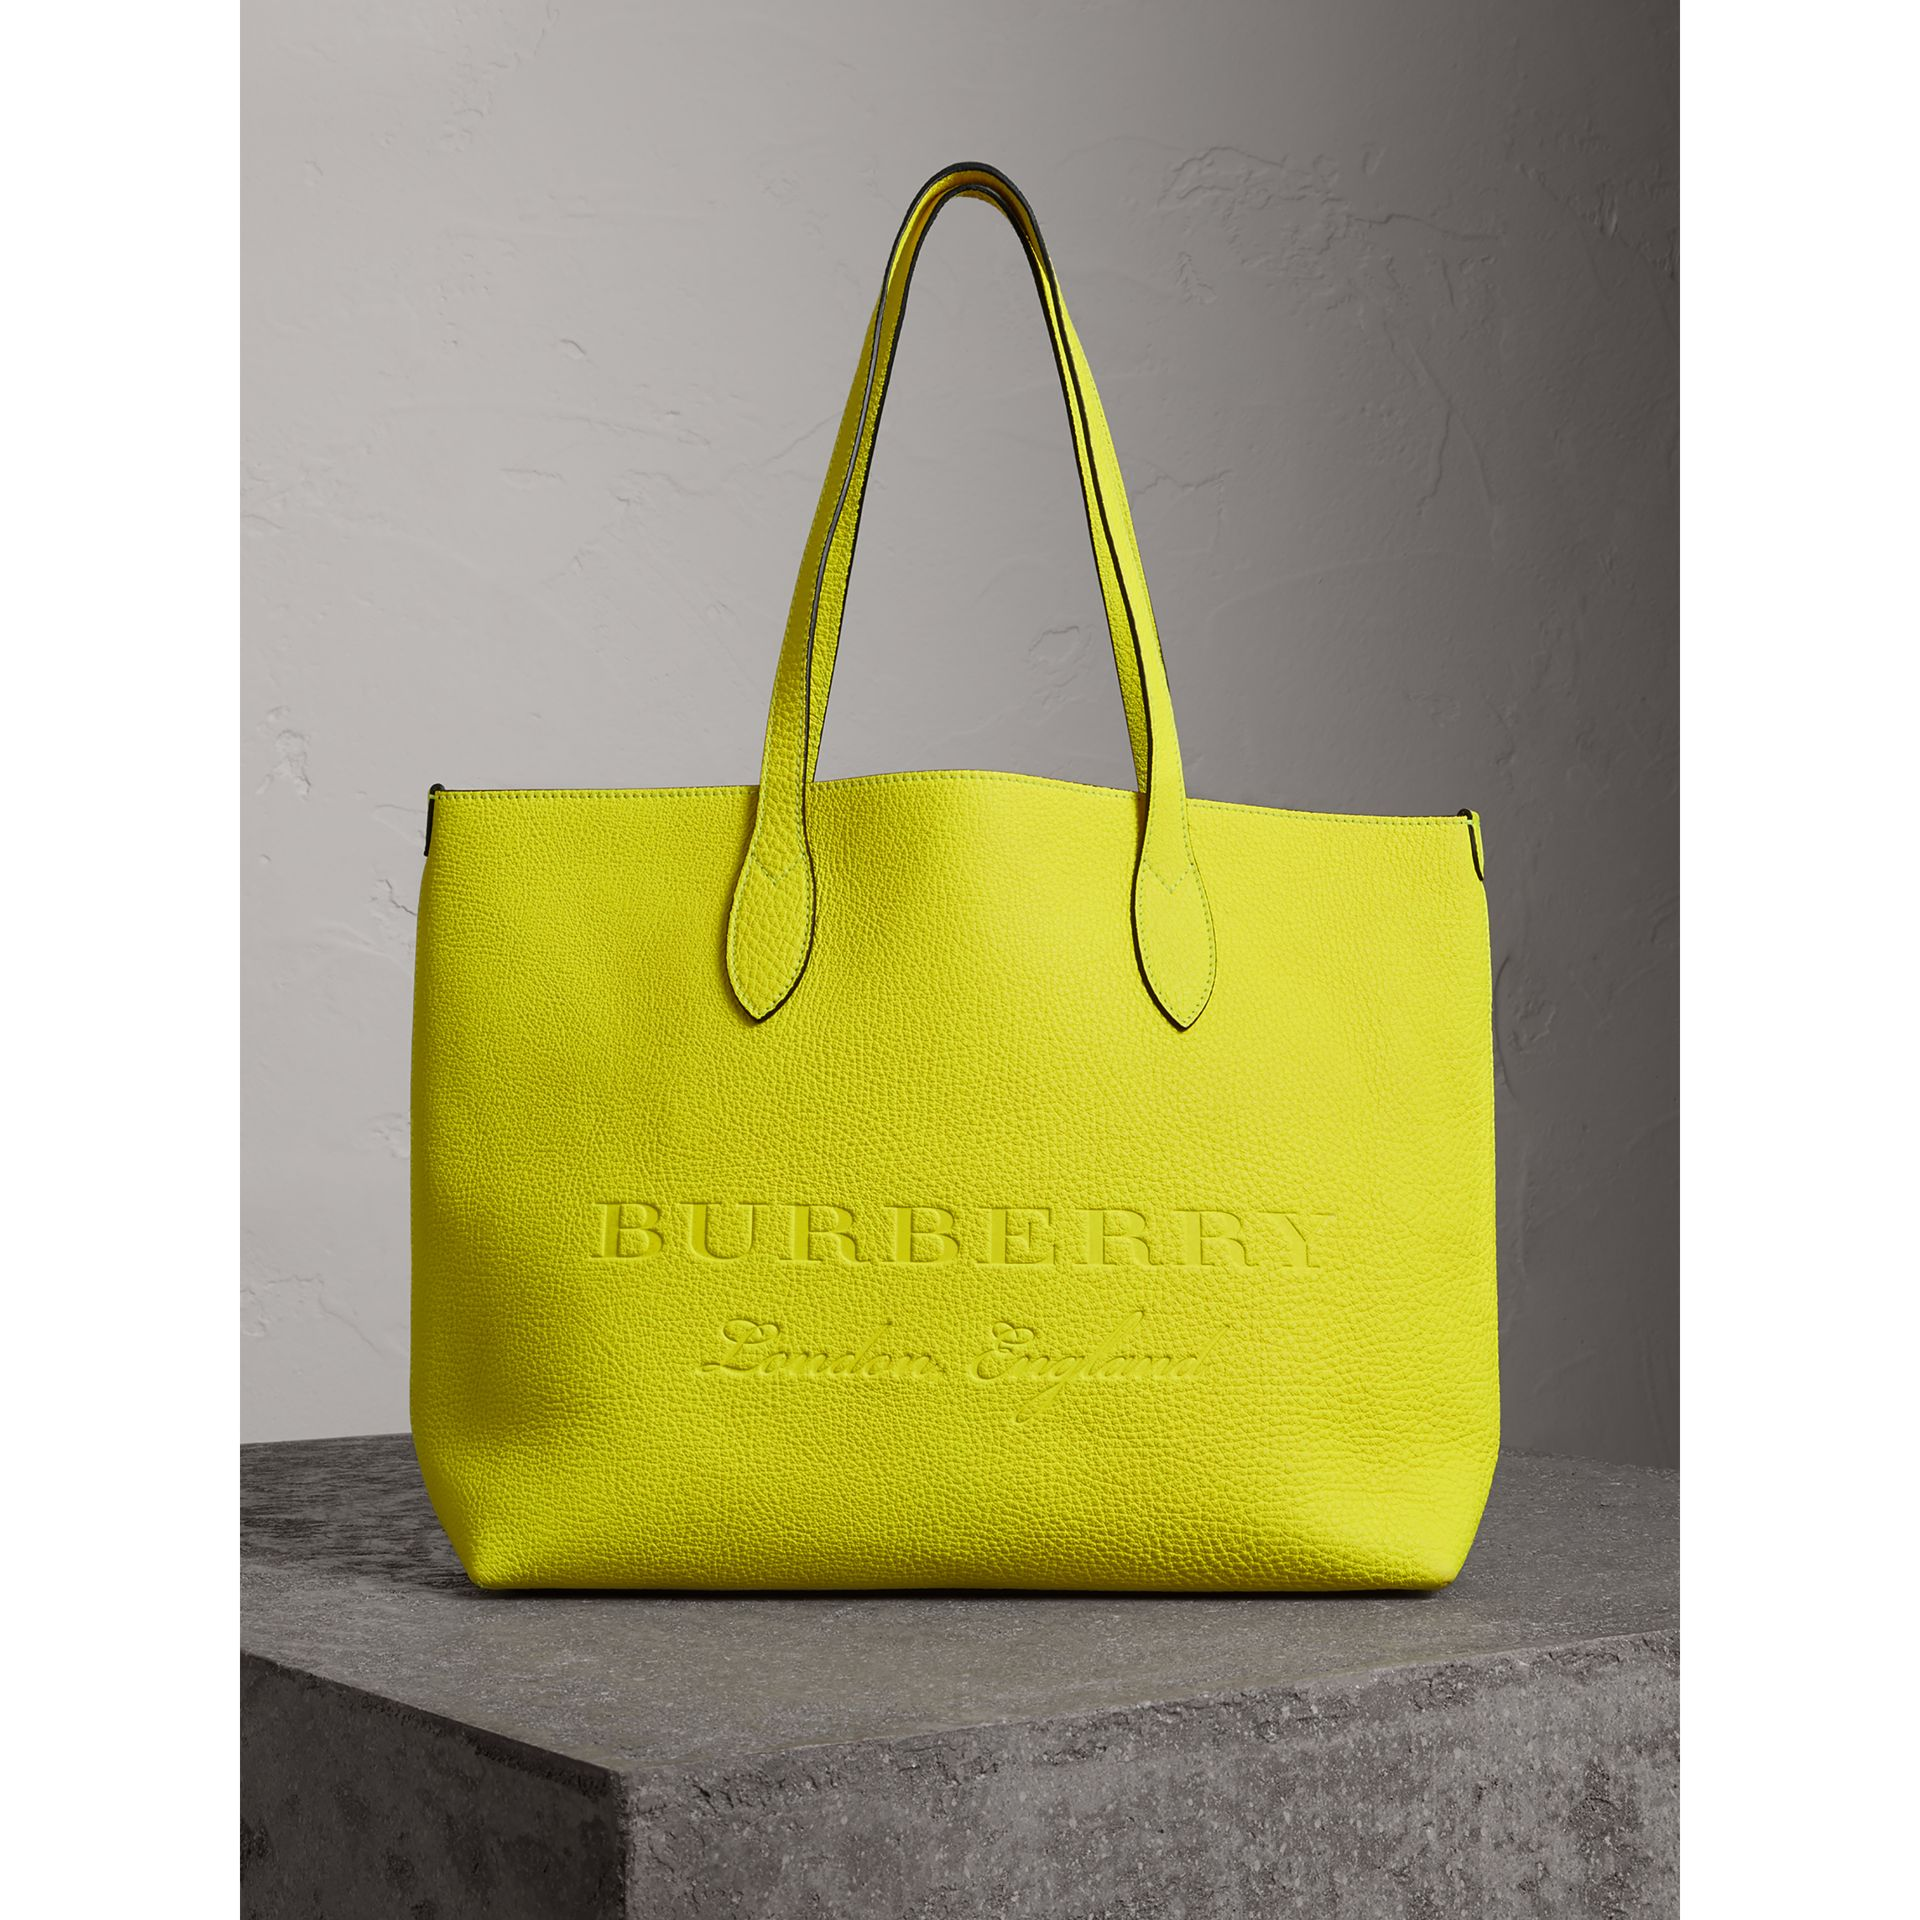 d4a02103920 Burberry - A versatile accessory in Italian calf leather, this Burberry  tote bag will instantly lift casual looks thanks to its vibrant neon hue.